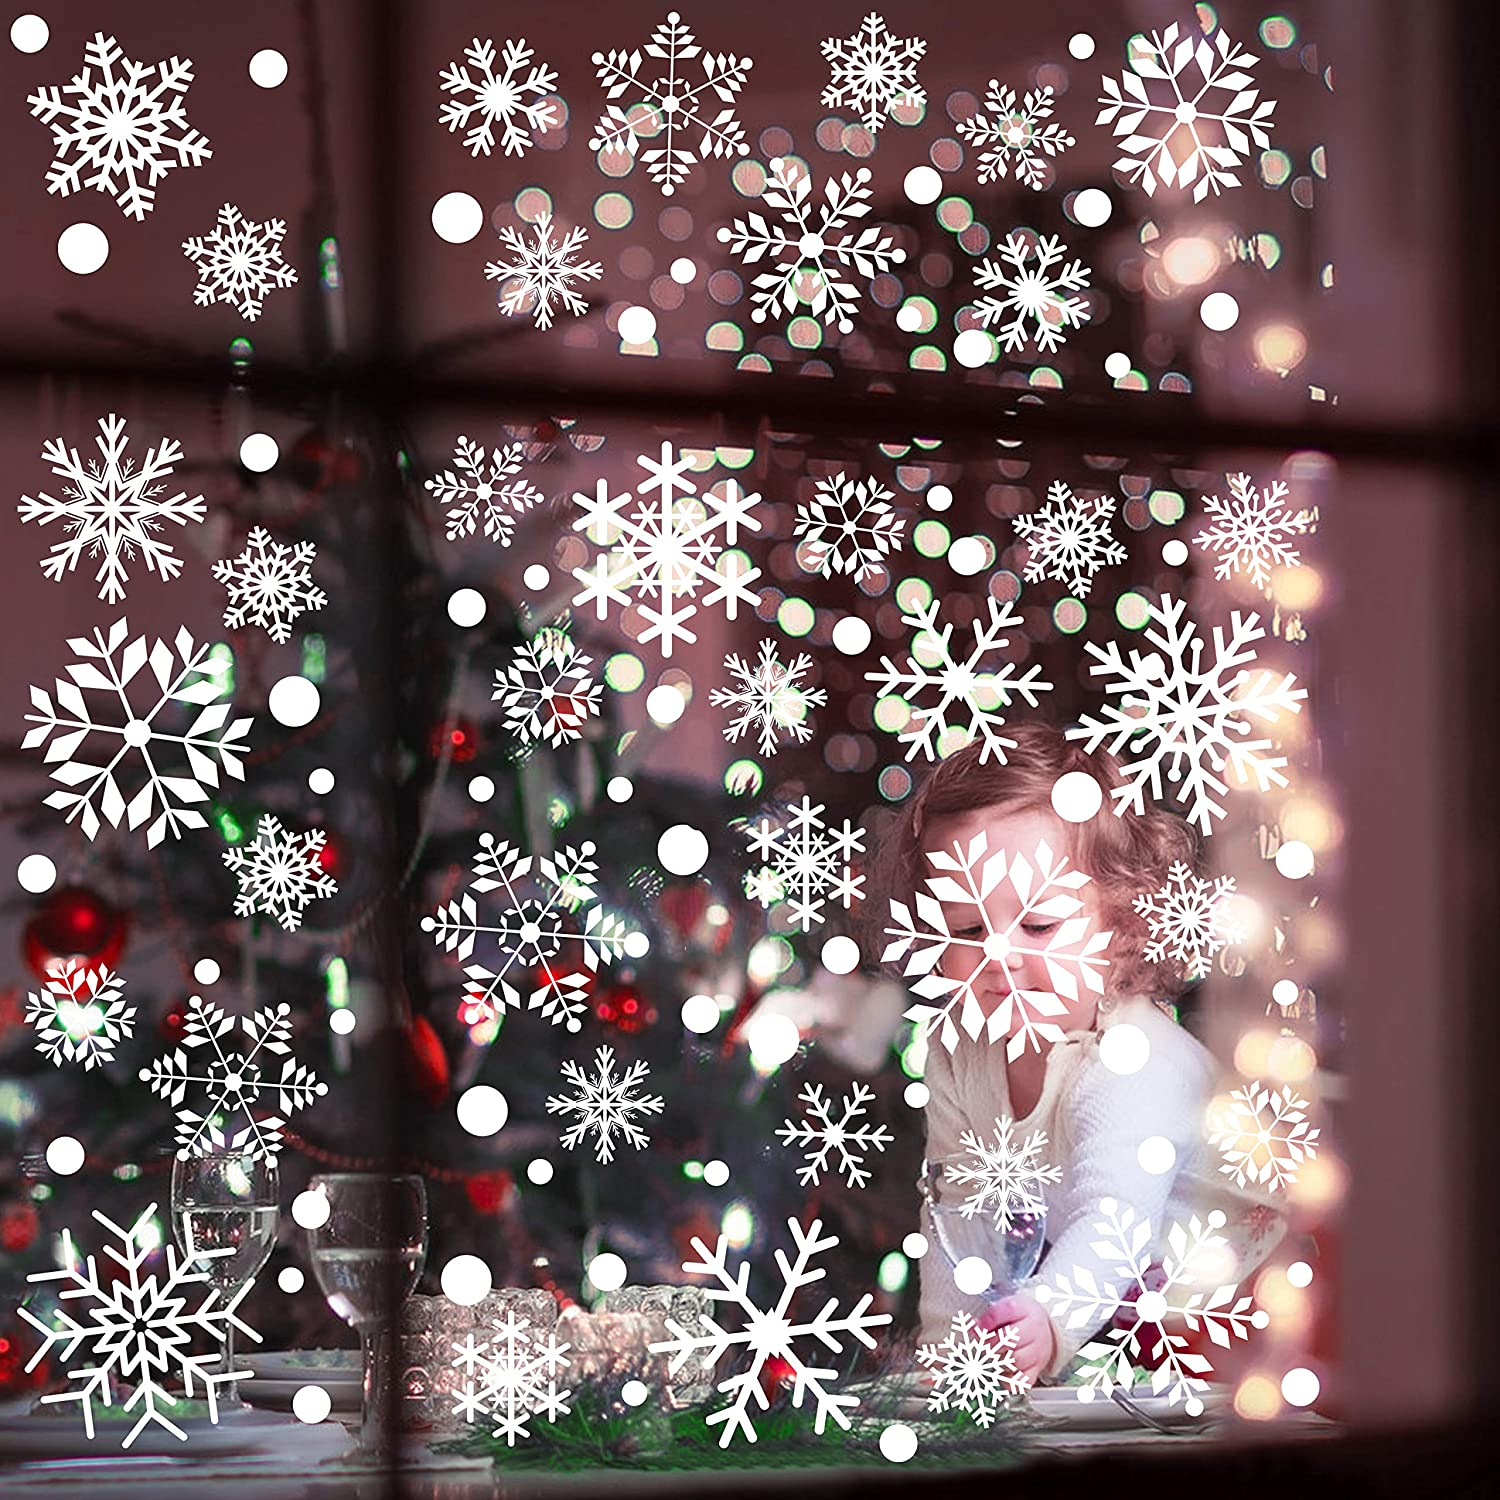 Christmas Decorations Snowflake Decorations Window Decals Christmas Ornaments Stickers for Winter Wonderland Birthday Party Supplies Winter Decorations Holiday Party Supplies